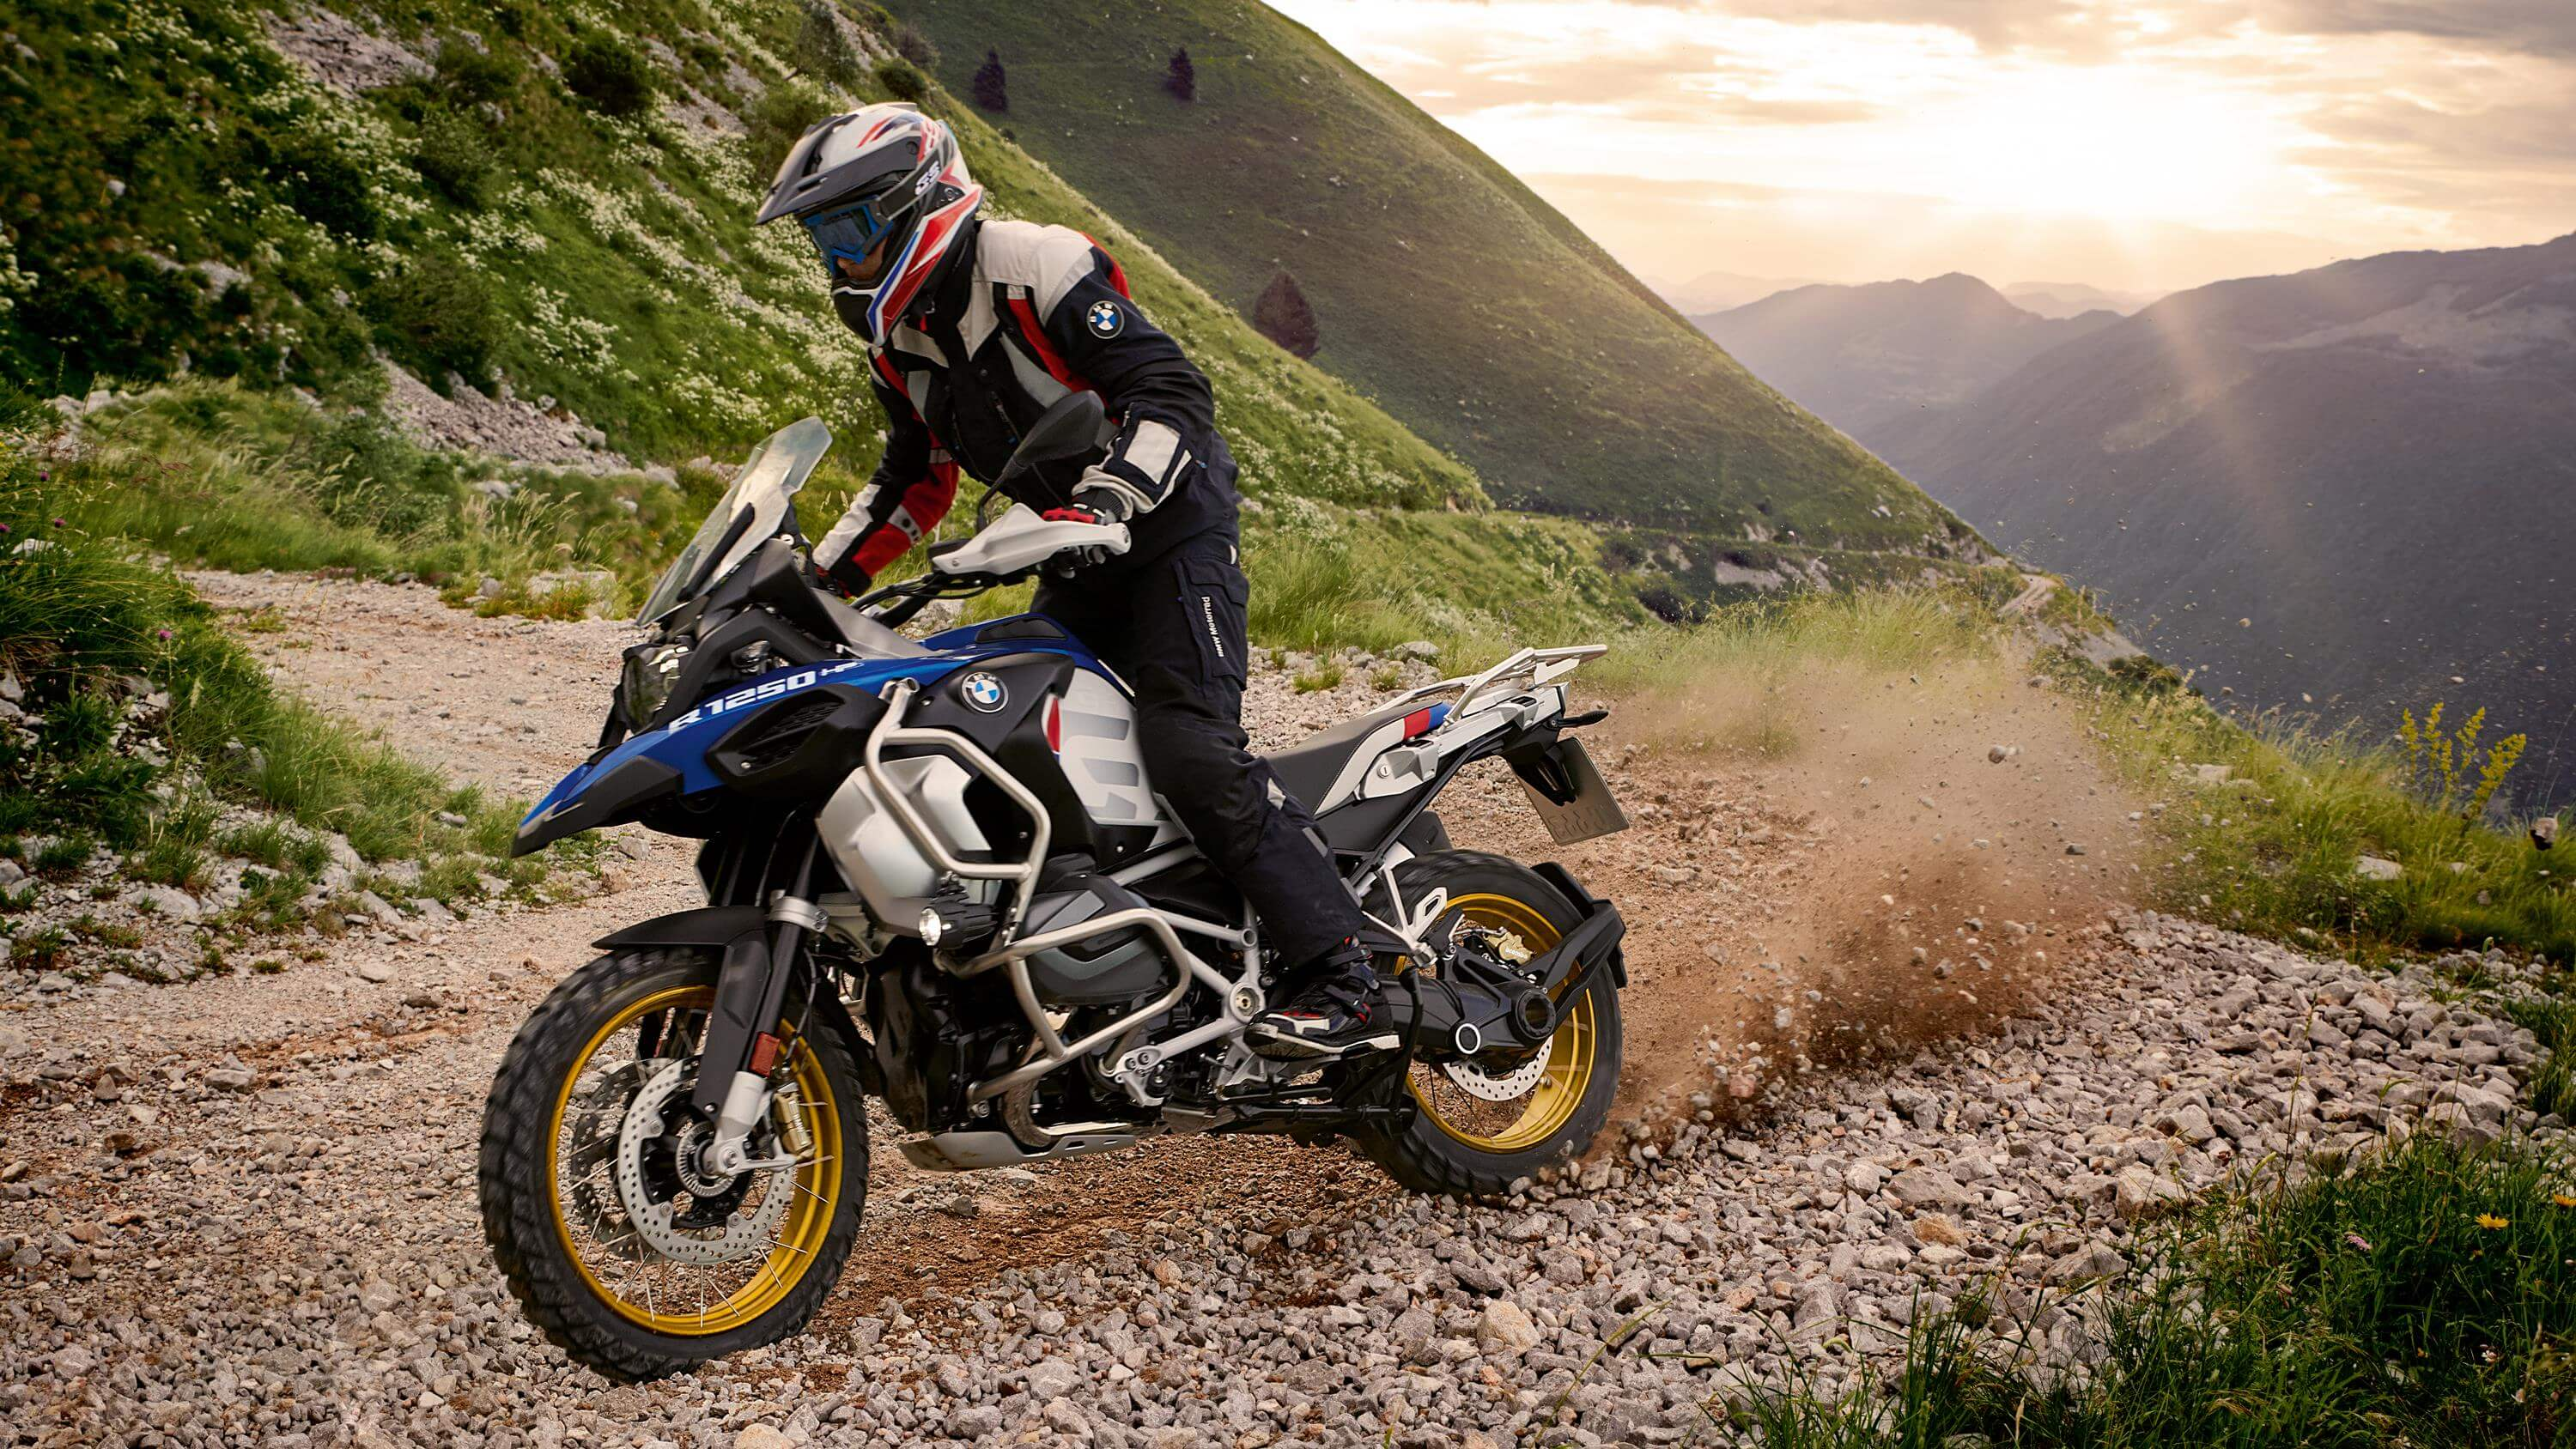 Bookings for flagship BMW R 1250 GS and R 1250 GS Adventure begin